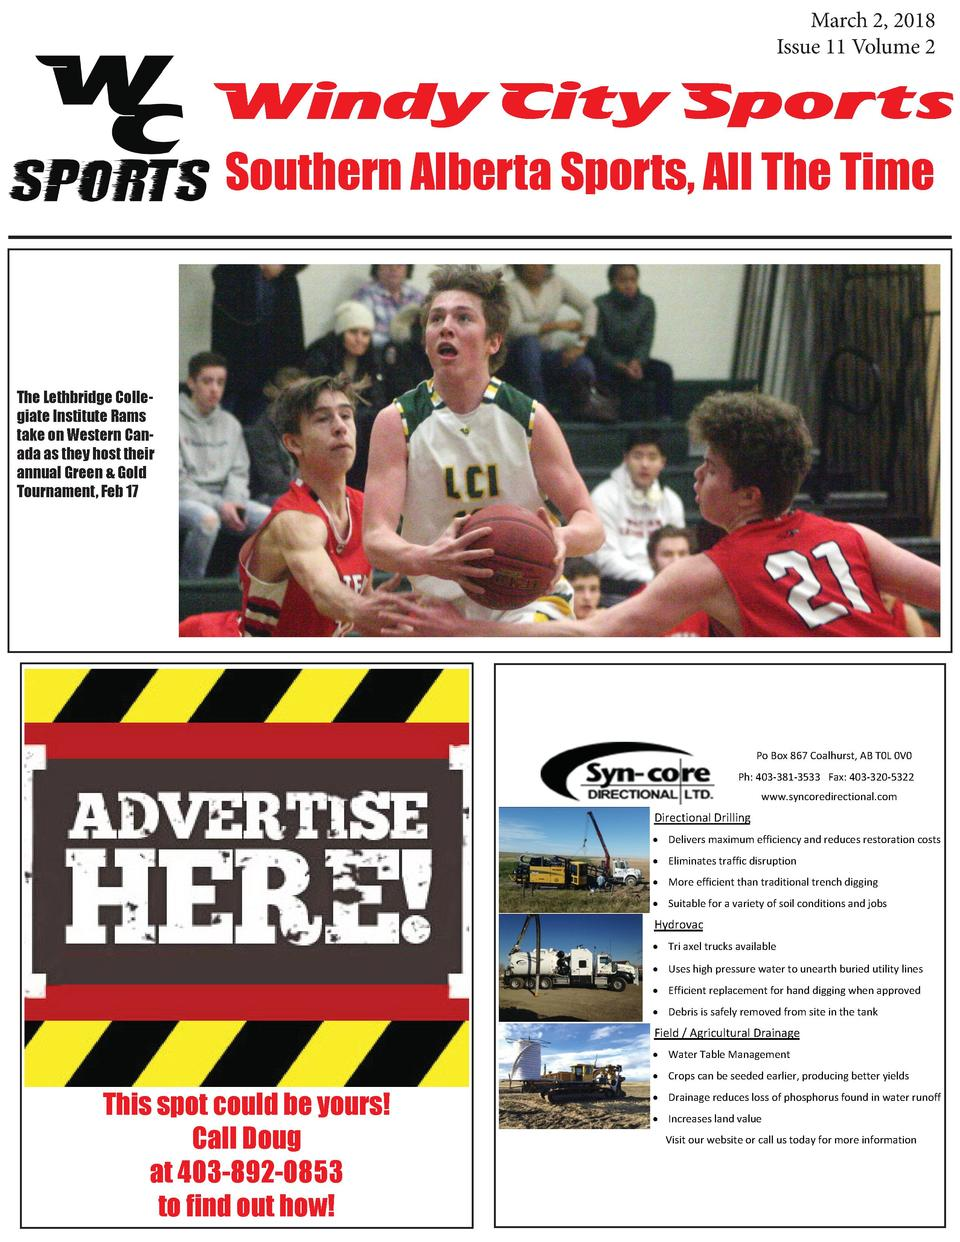 March 2, 2018 Issue 11 Volume 2  Windy City Sports Southern Alberta Sports, All The Time  The Lethbridge Collegiate Instit...